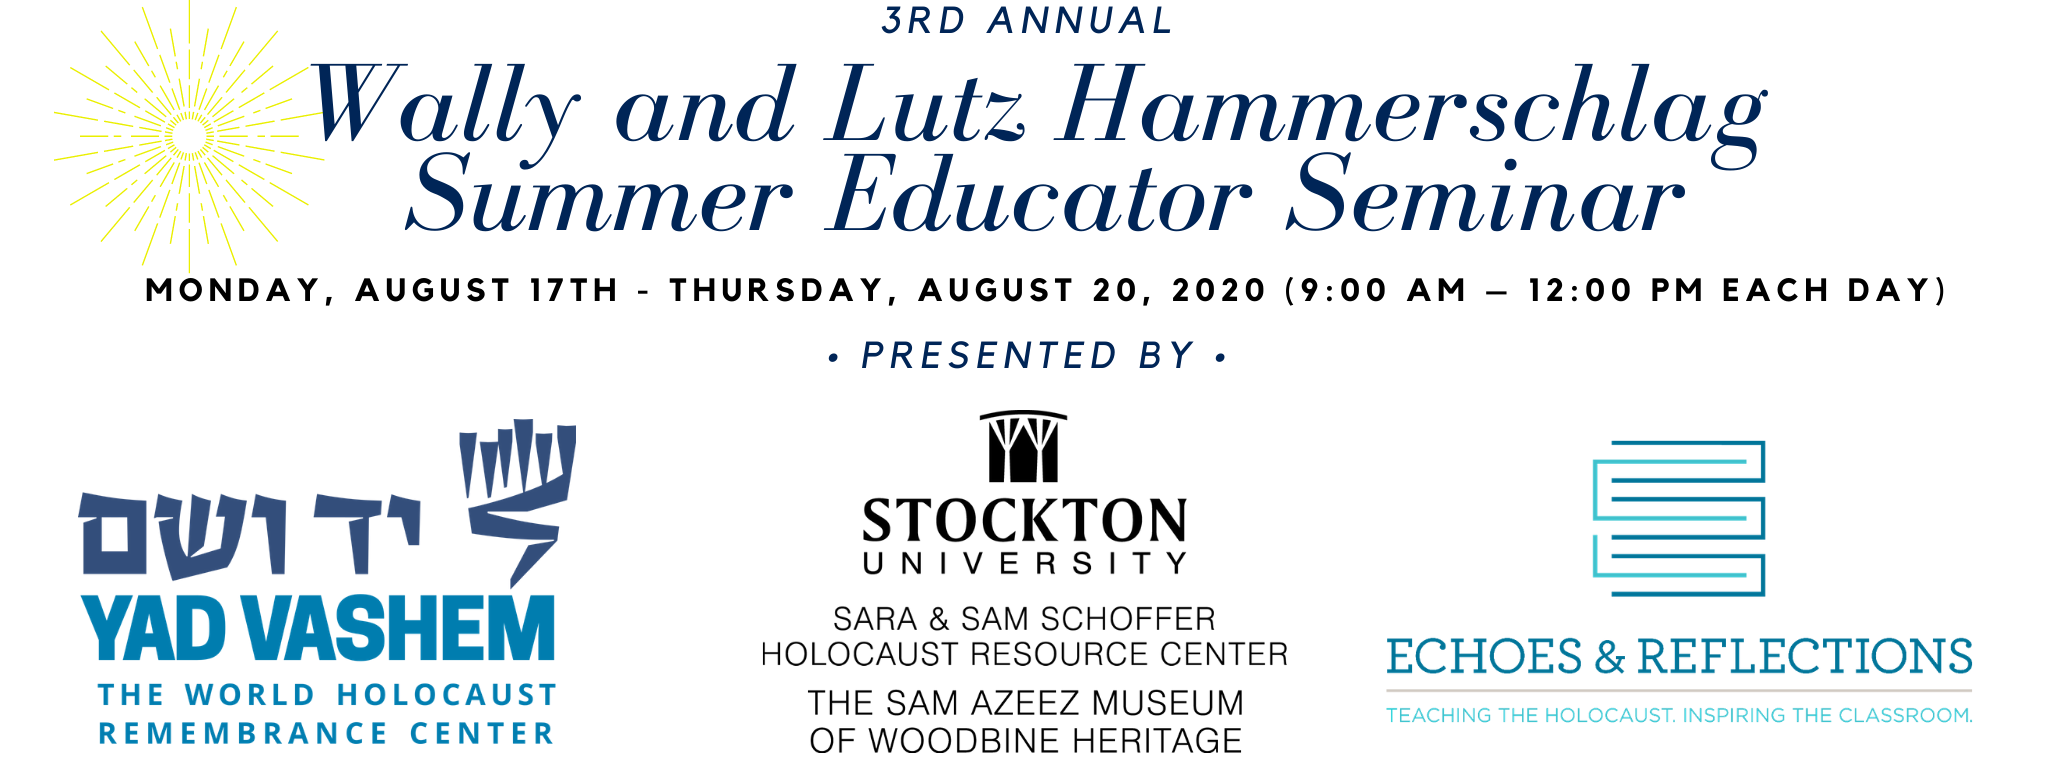 Header for the 3rd Annual Wally and Lutz Hammerschlag Summer Educator Seminar